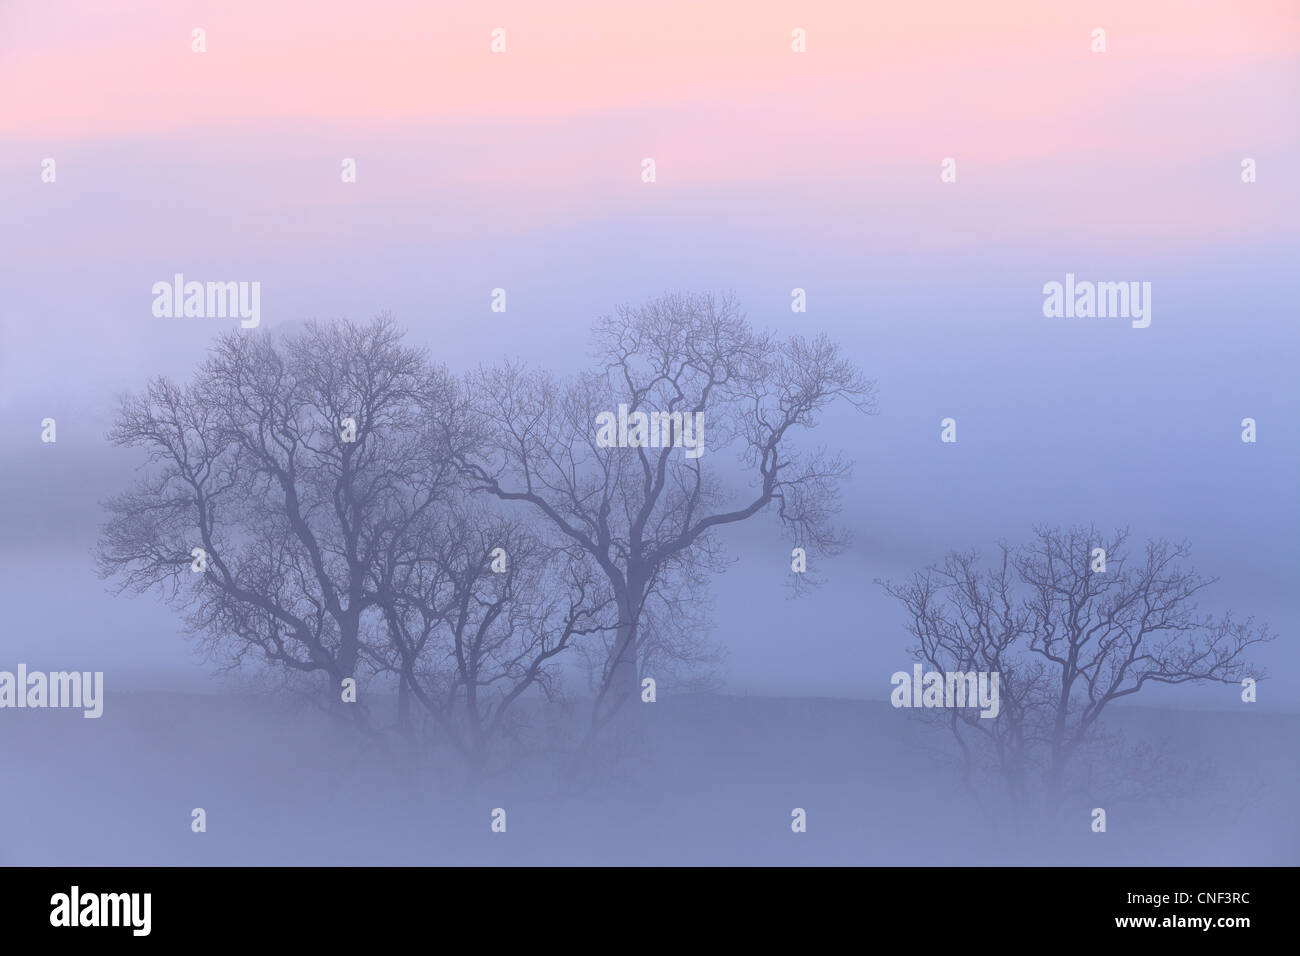 Tree branches surrounded by mist at sunrise near Airton in Malhamdale, Yorkshire - Stock Image